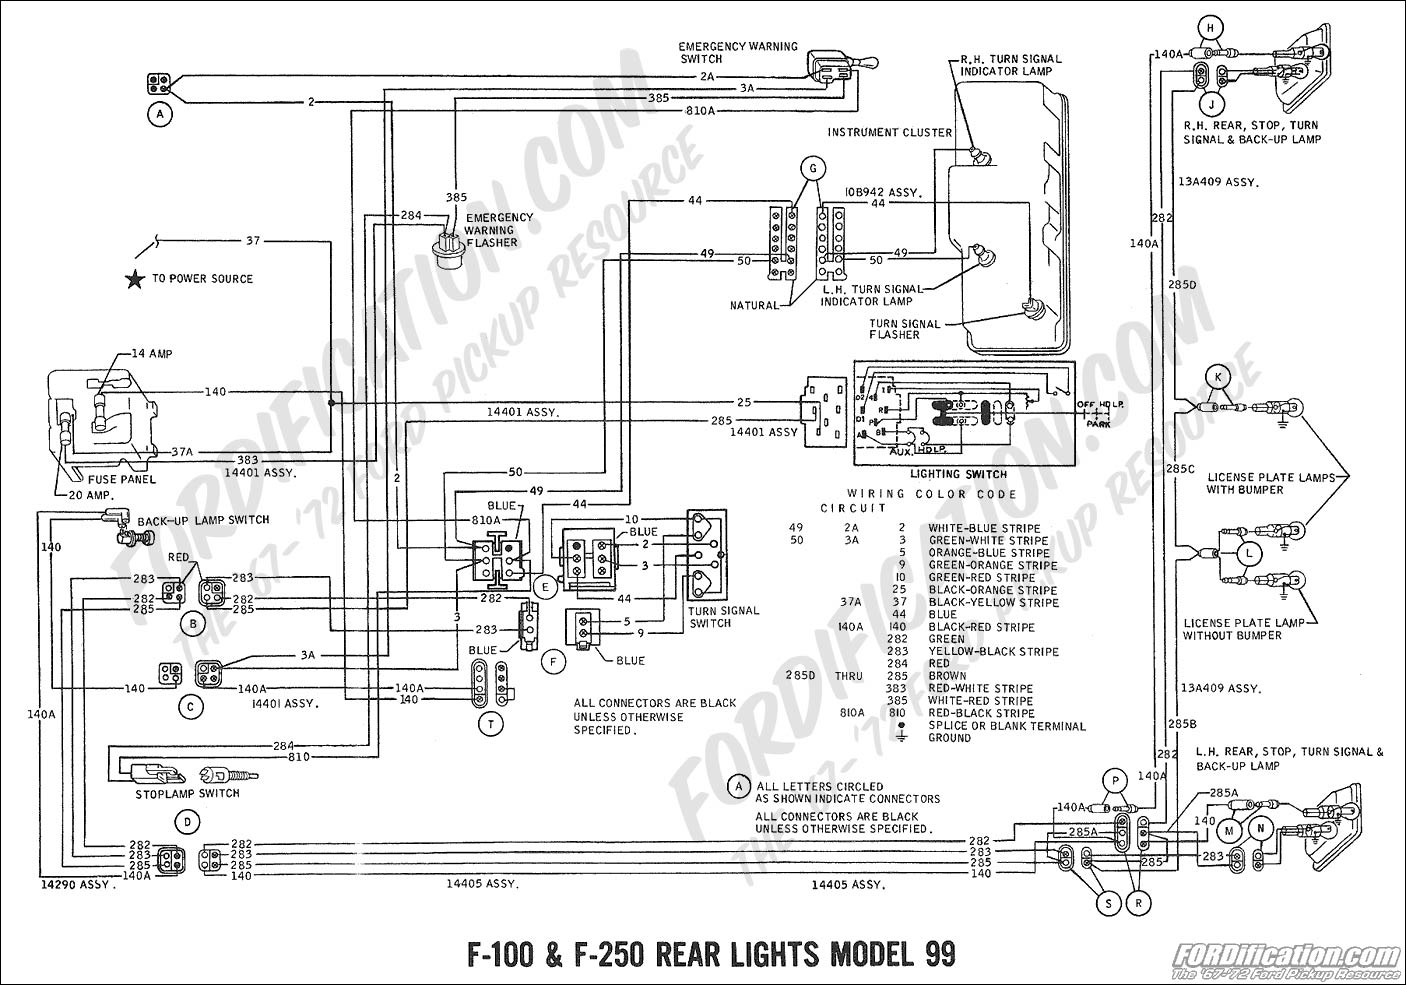 1969 Ford F250 Wiring Schematic